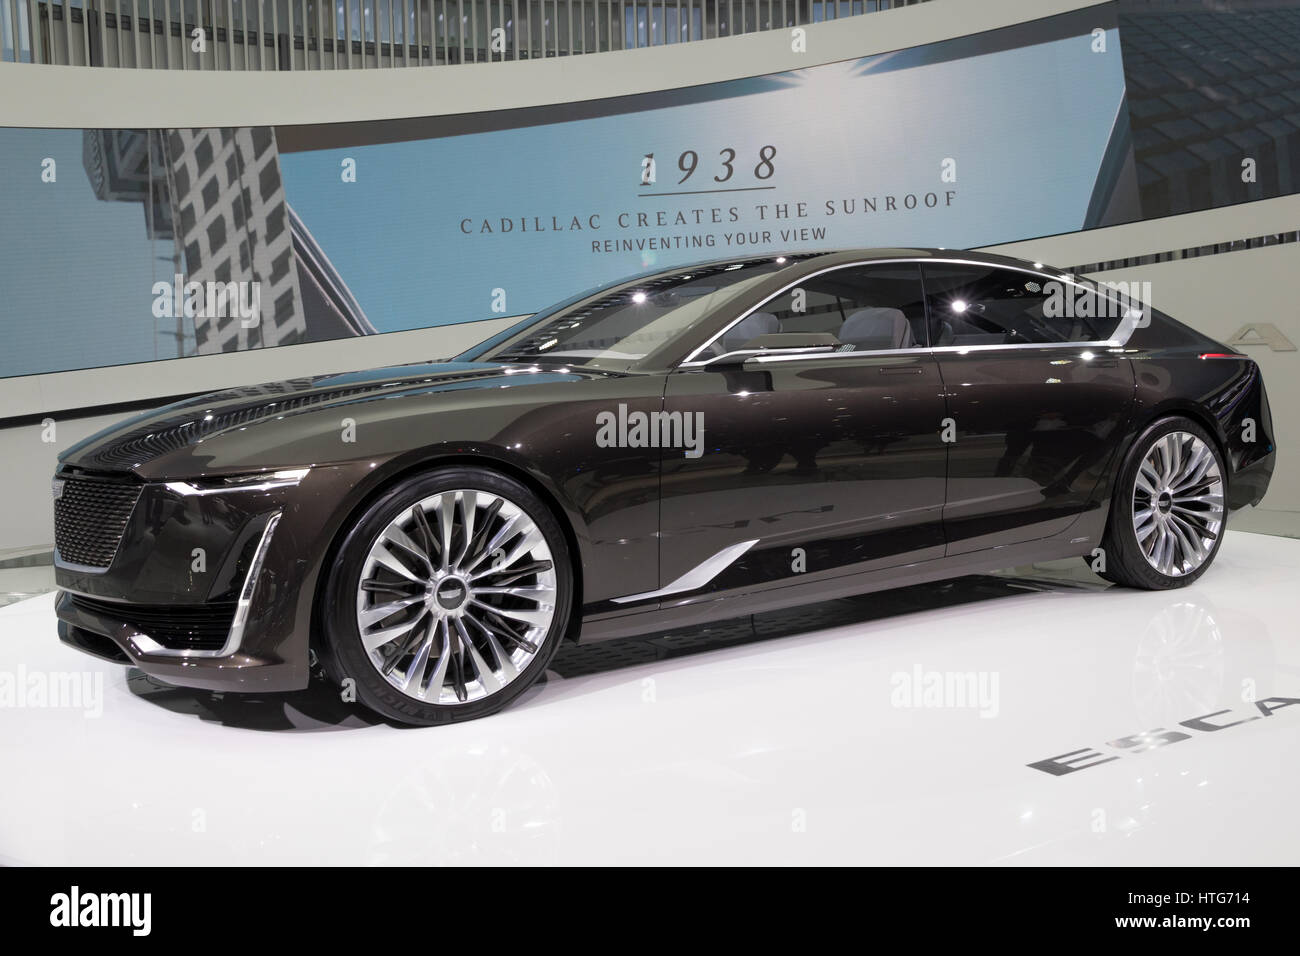 GENEVA, SWITZERLAND - MARCH 7, 2017: New Cadillac Escala Concept car presented at the 87th Geneva International - Stock Image